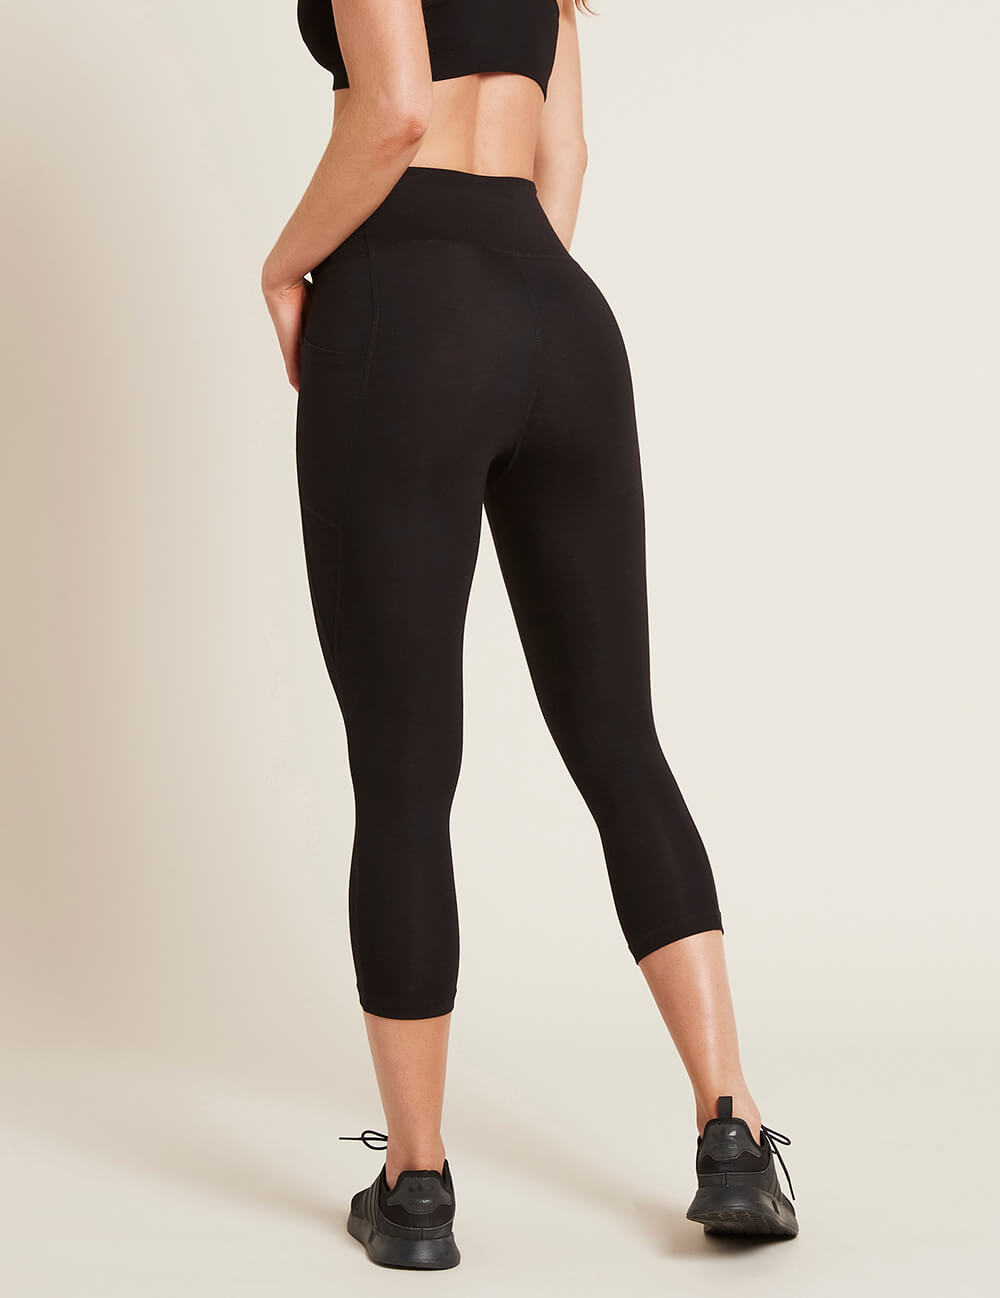 Active Blended High-Waisted 3/4 Leggings with Pockets